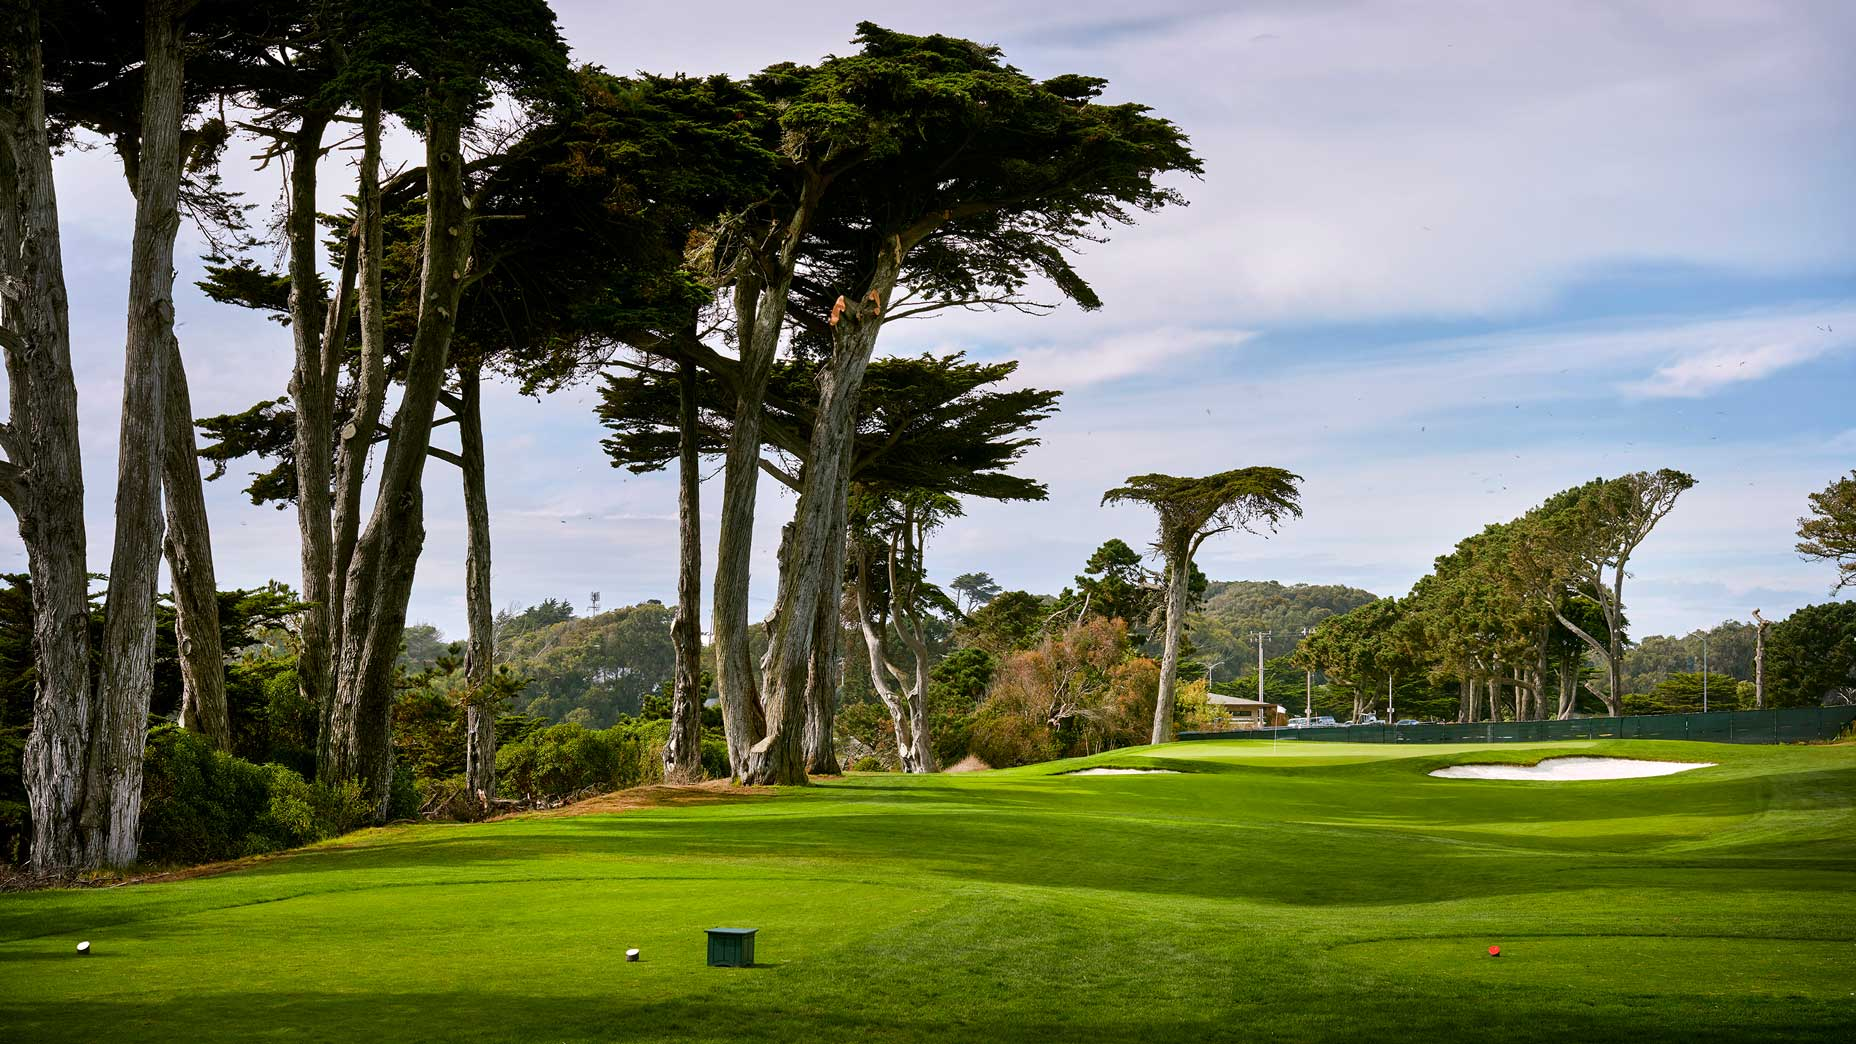 The 171-yard, par-3 17th hole at TPC Harding Park in 2018.